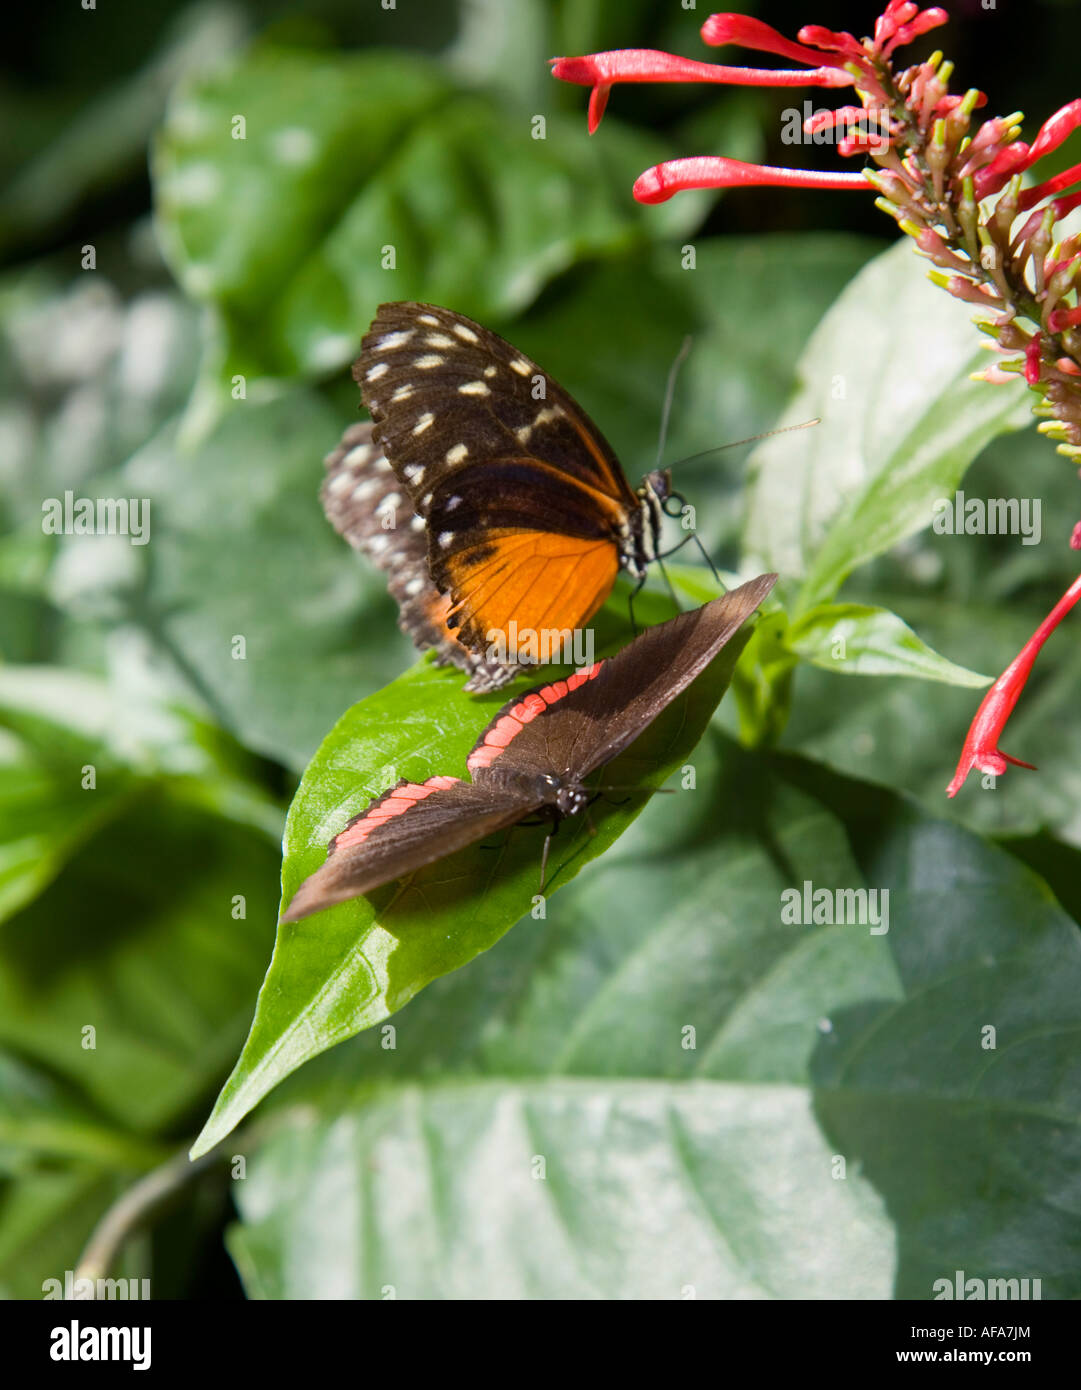 Amazing Butterfly from all over the World - Stock Image